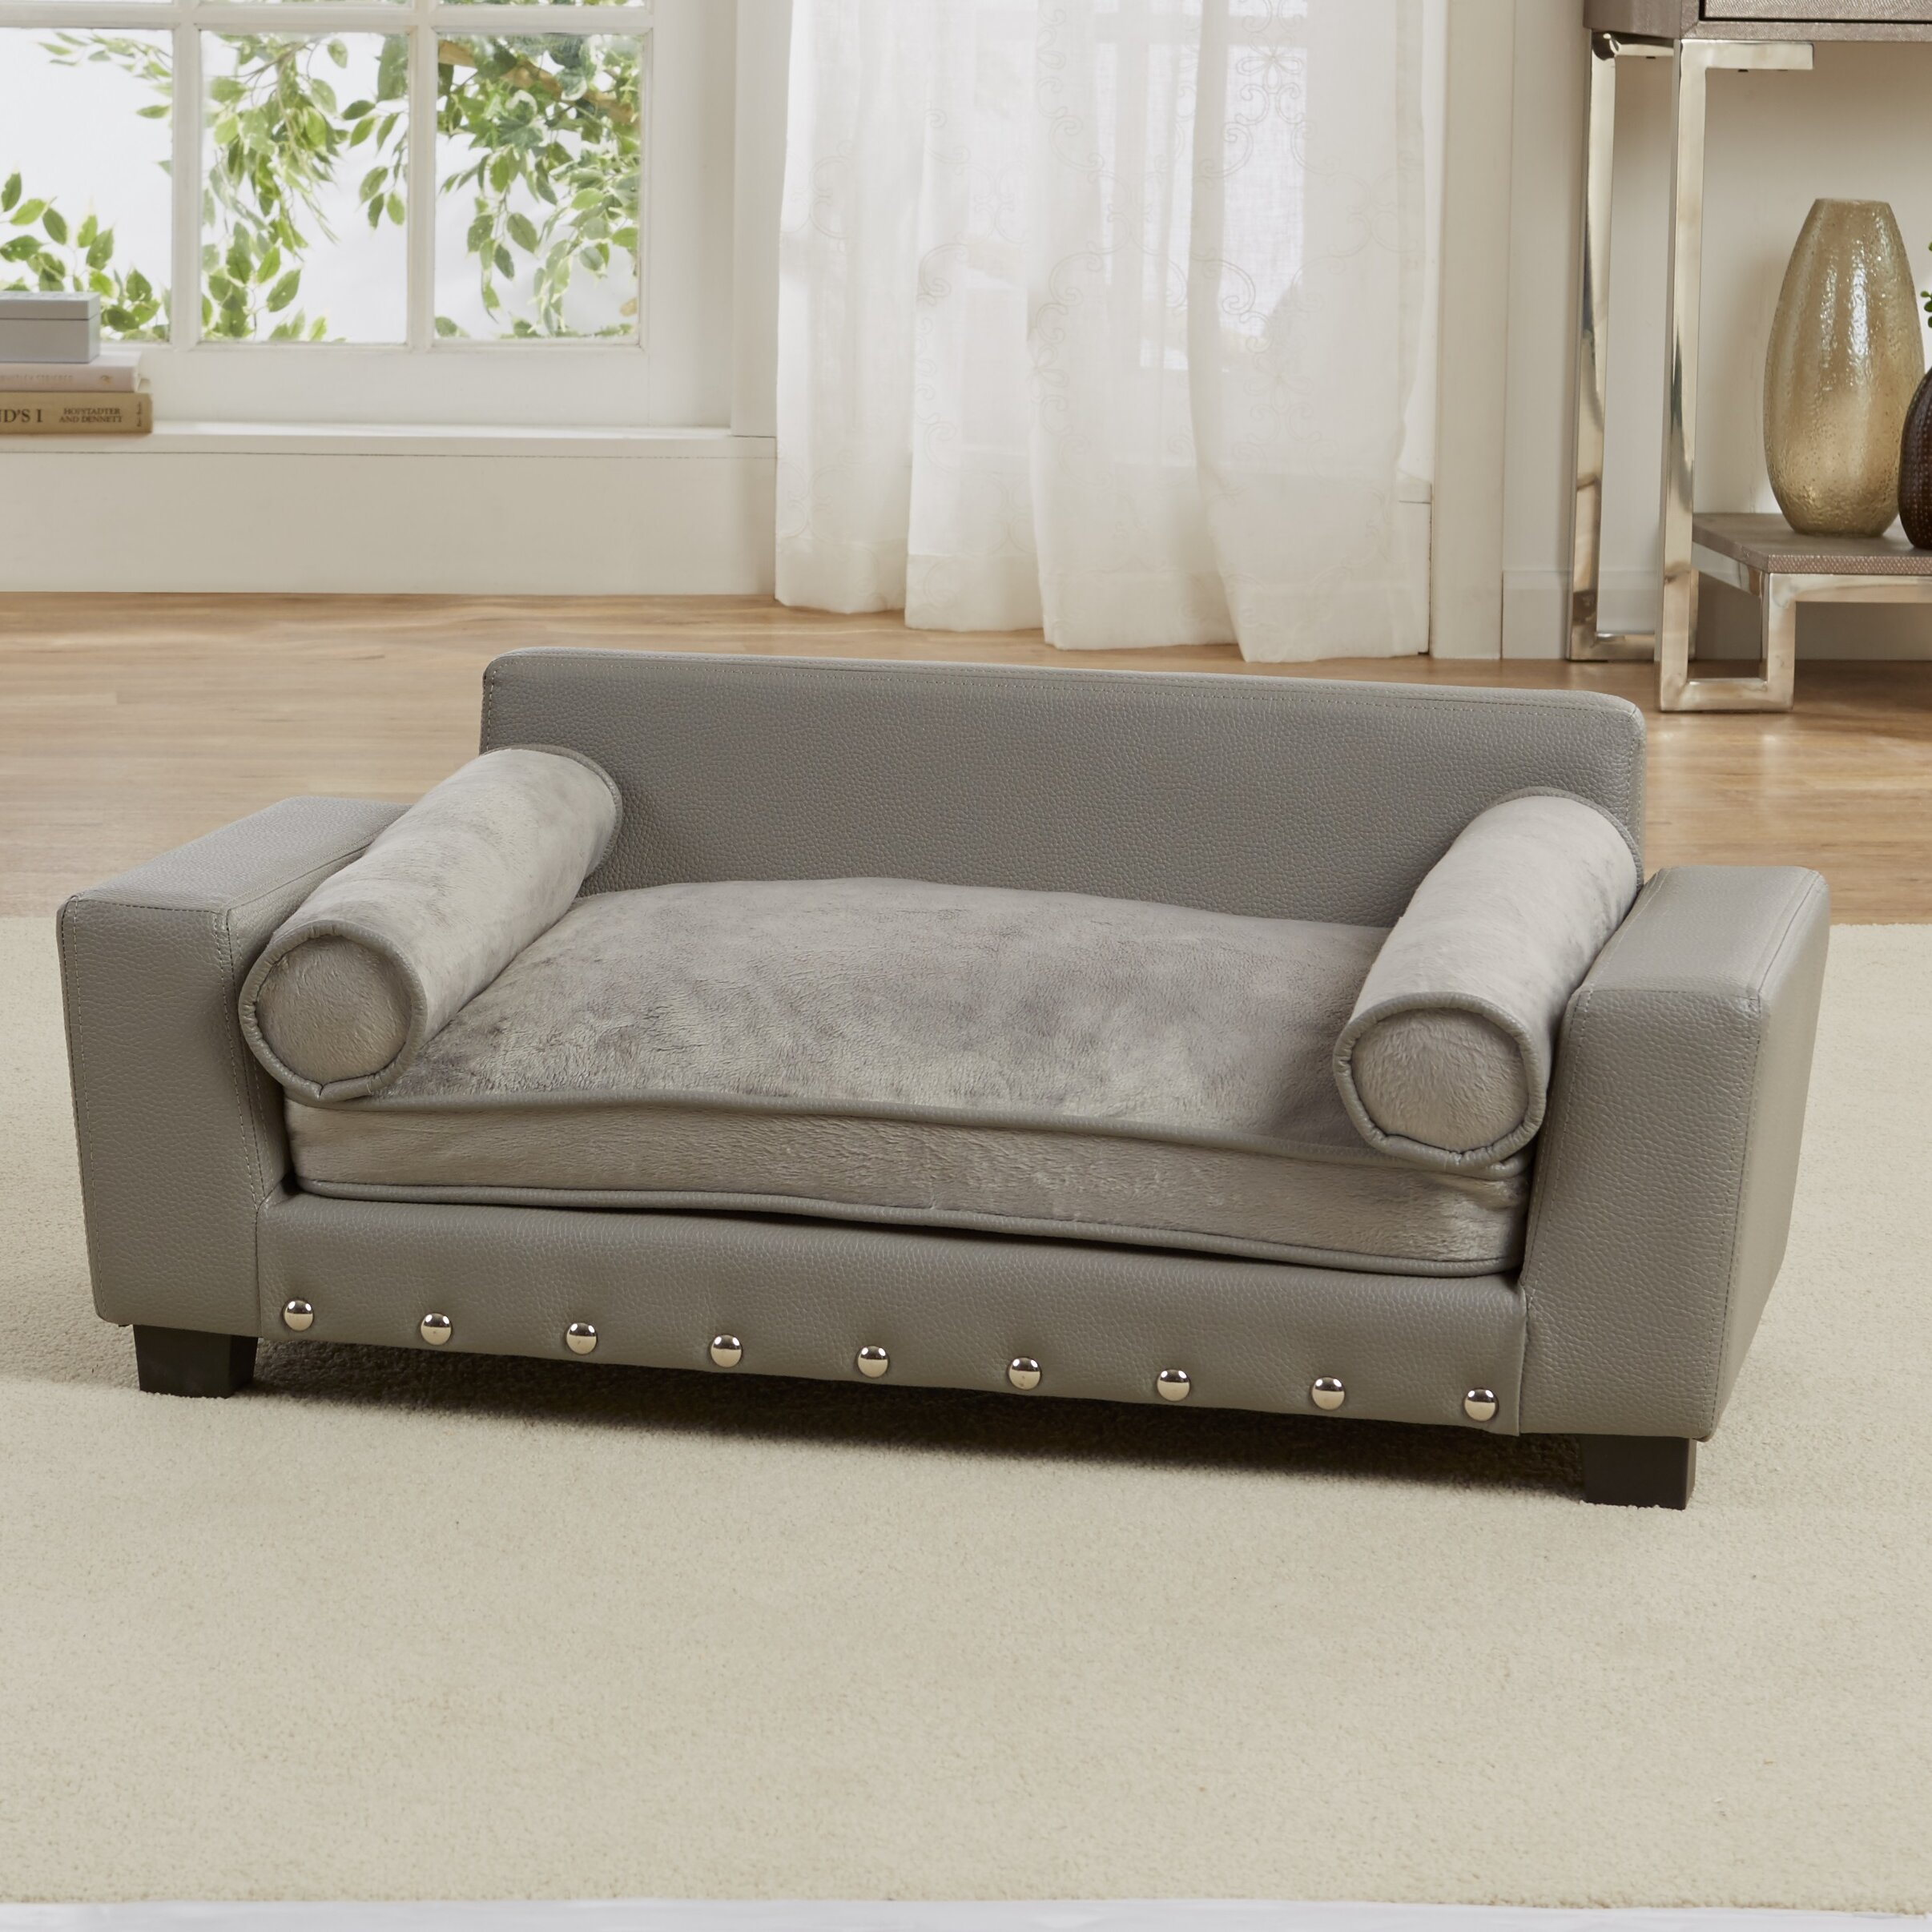 Pleasant Elevated Dog Beds Youll Love In 2019 Wayfair Interior Design Ideas Gentotthenellocom